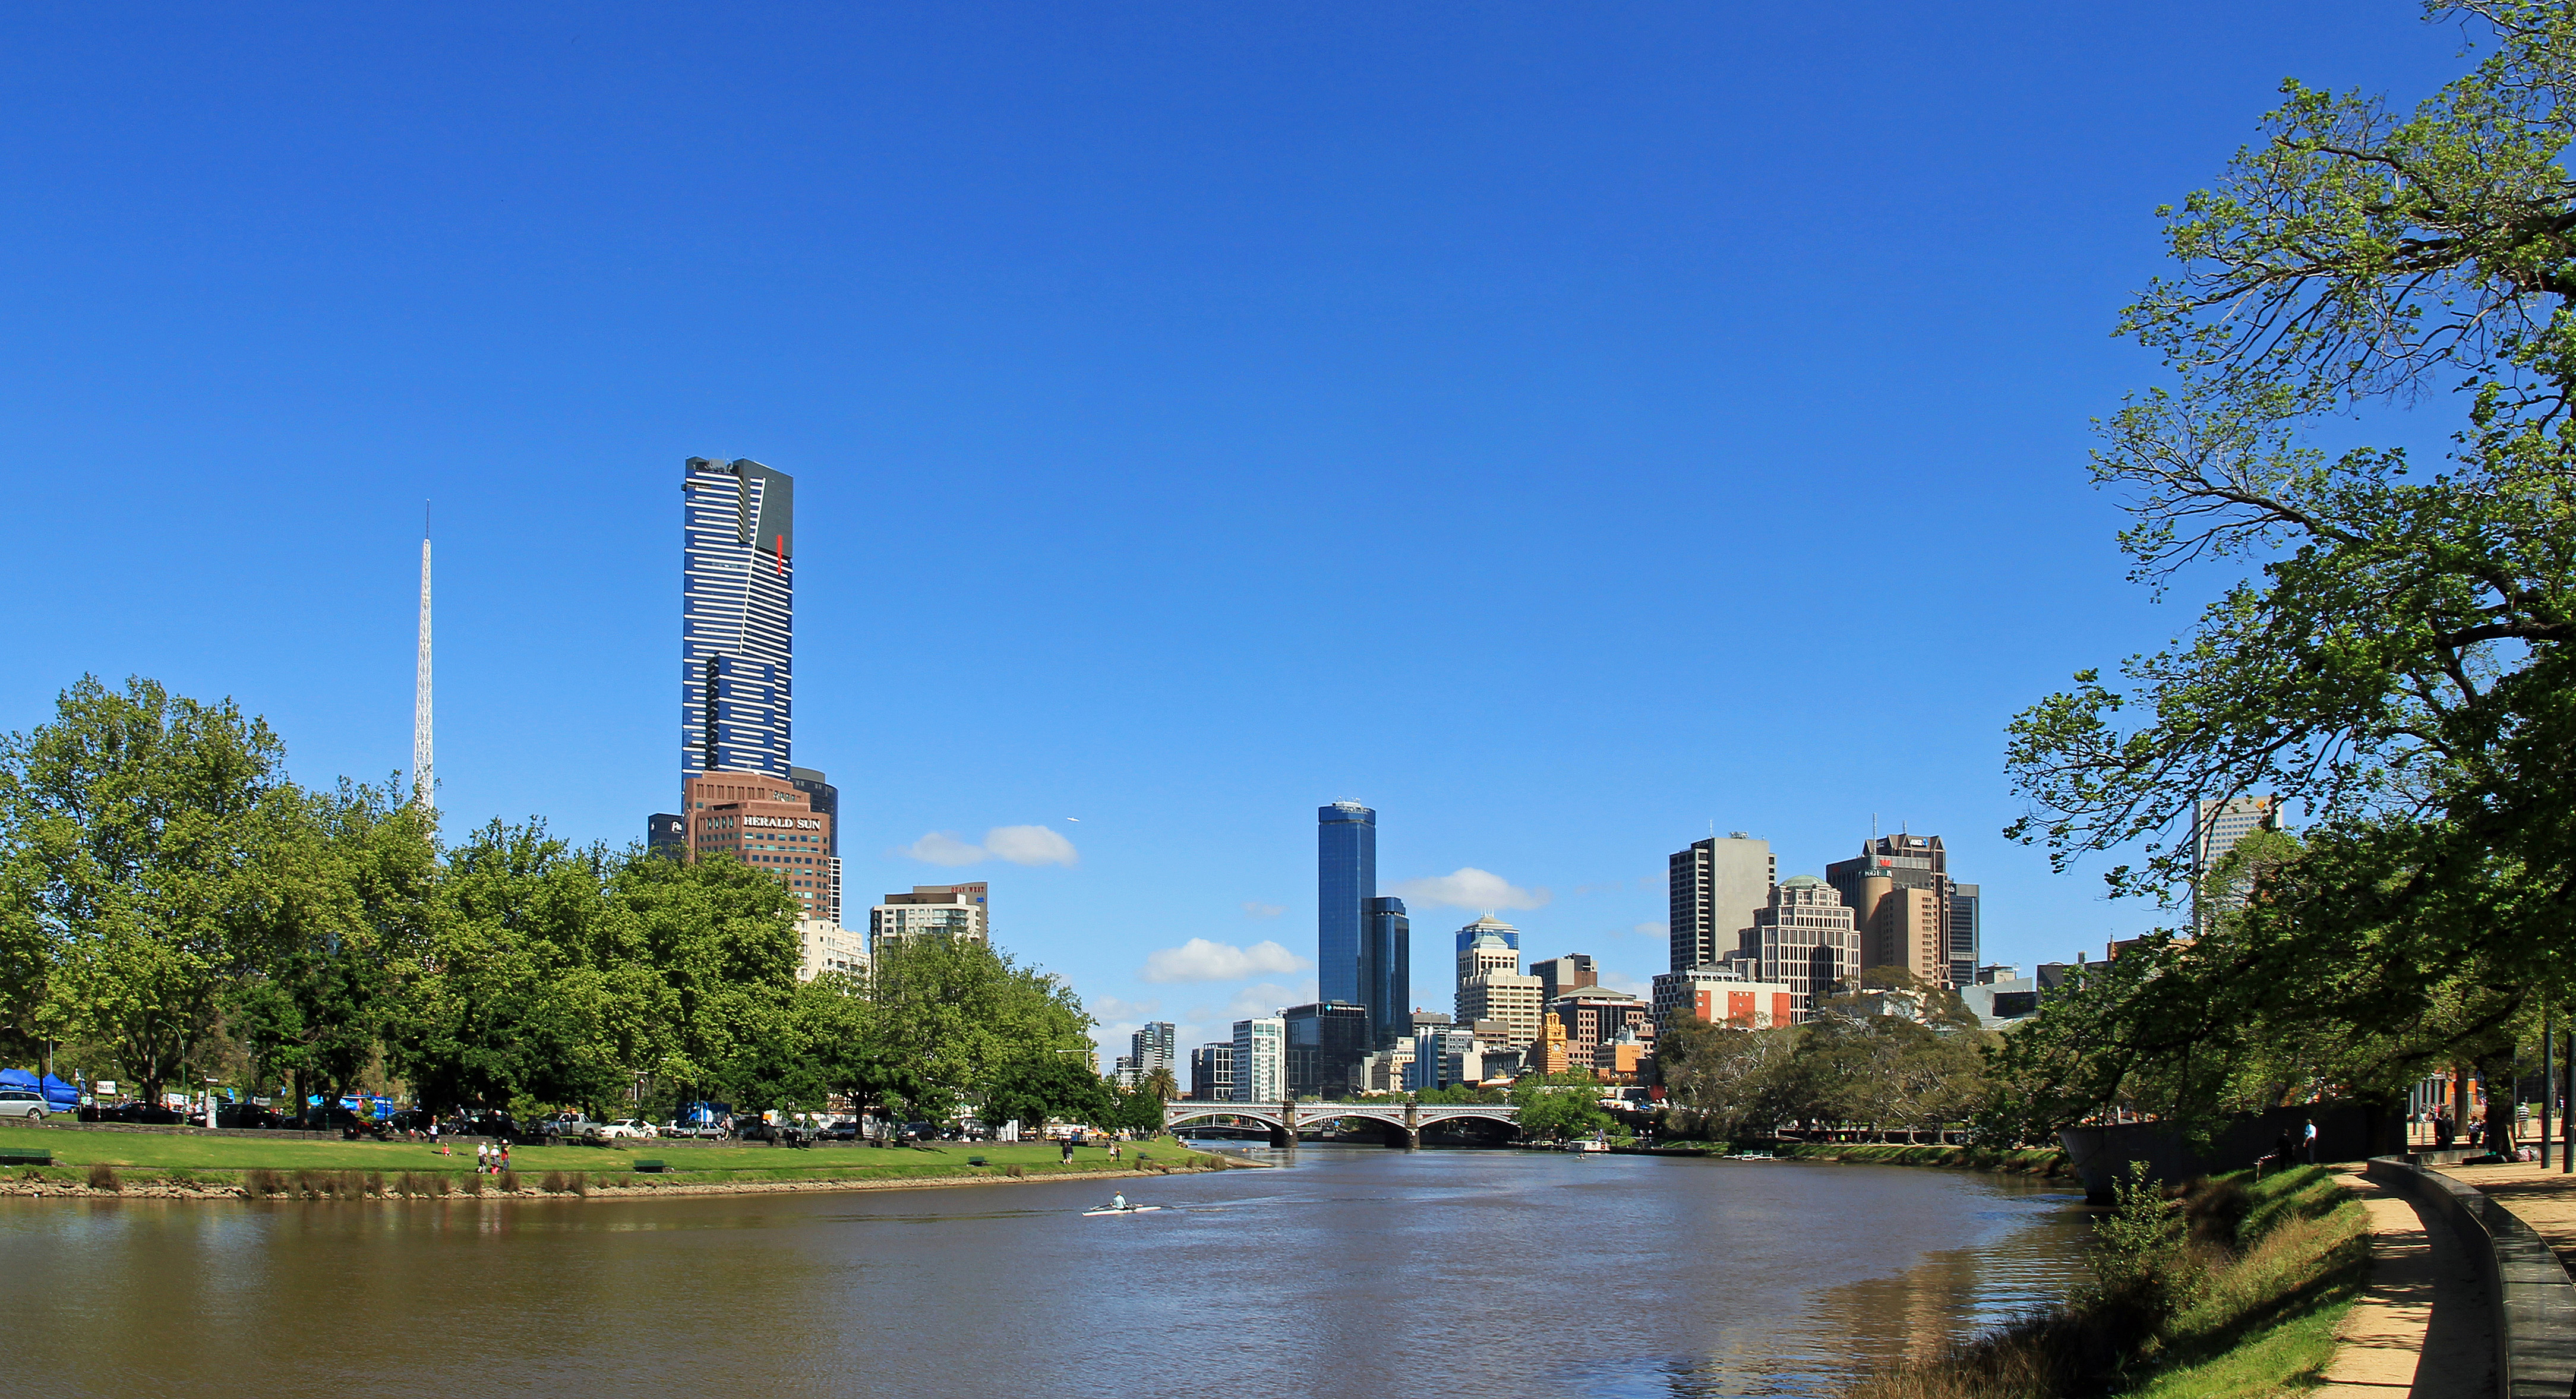 The Yarra River Melbourne